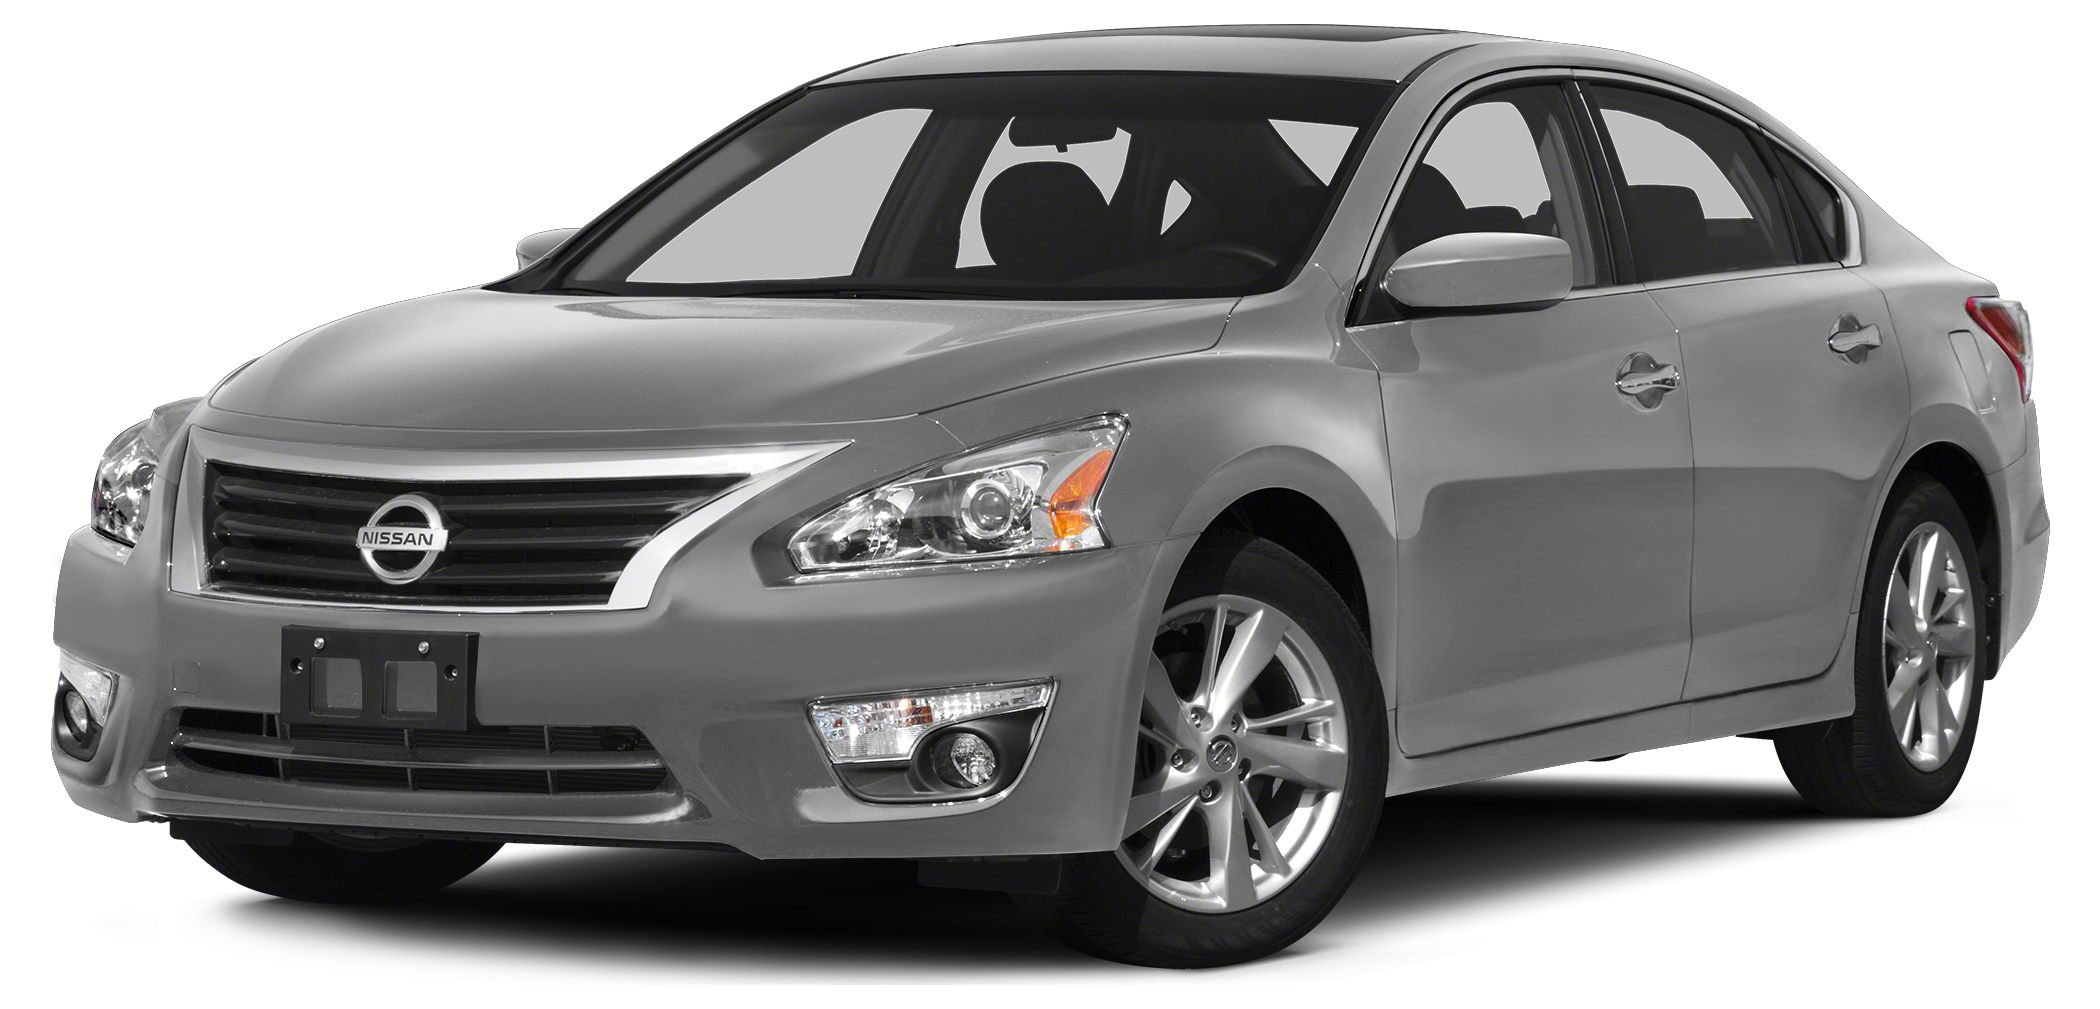 2013 Nissan Altima 25 SV SV new body style Altima in excellent conditon priced to sellMy My My